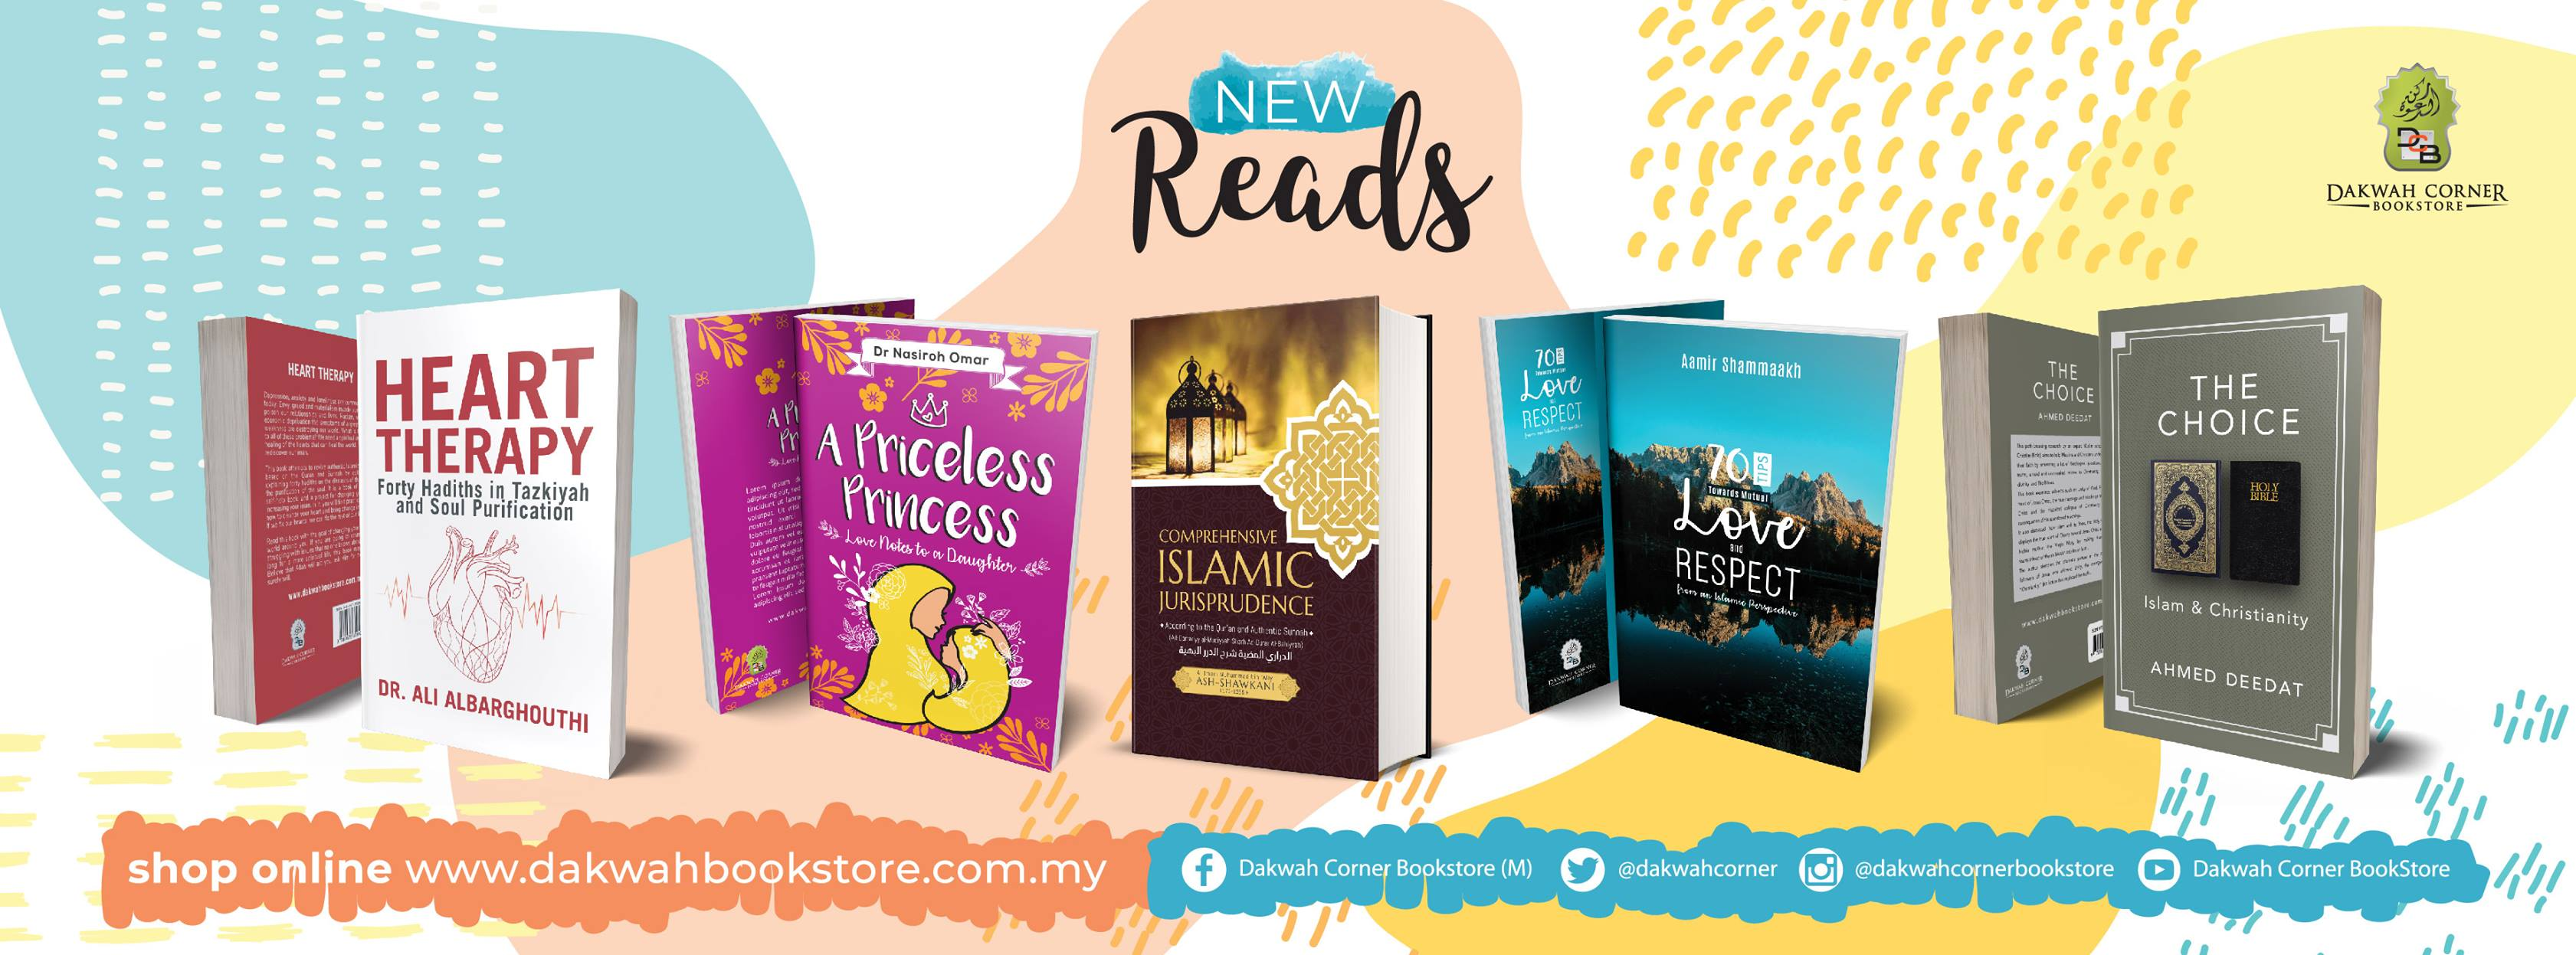 Dakwah Corner Bookstore: Islamic Bookstore For the Best